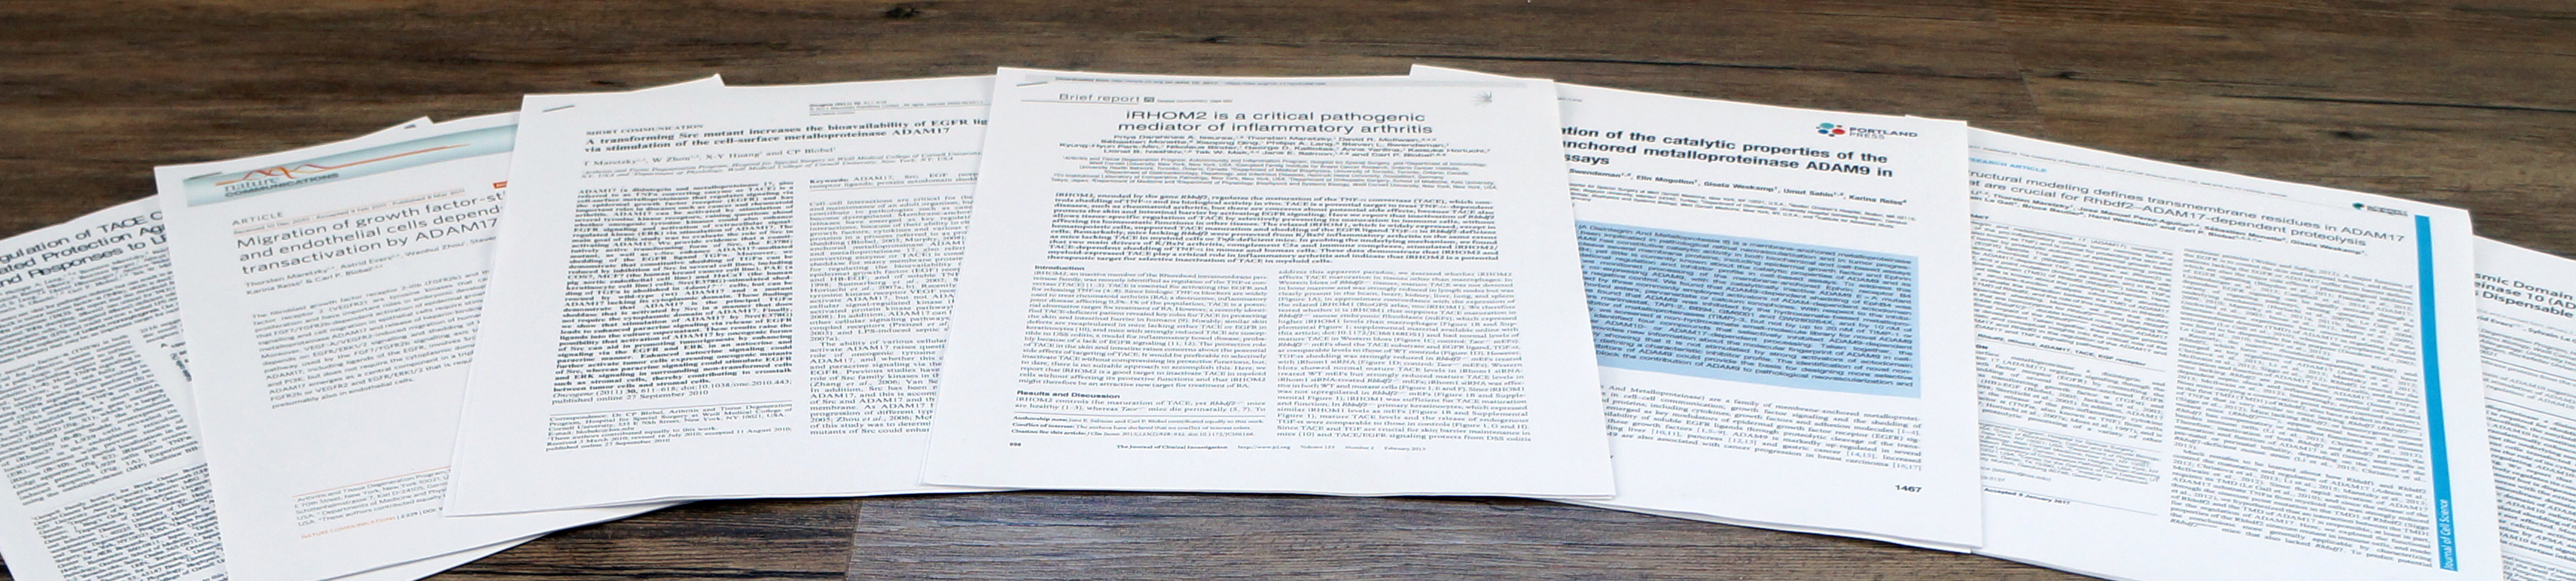 Table of Representative Journal Articles